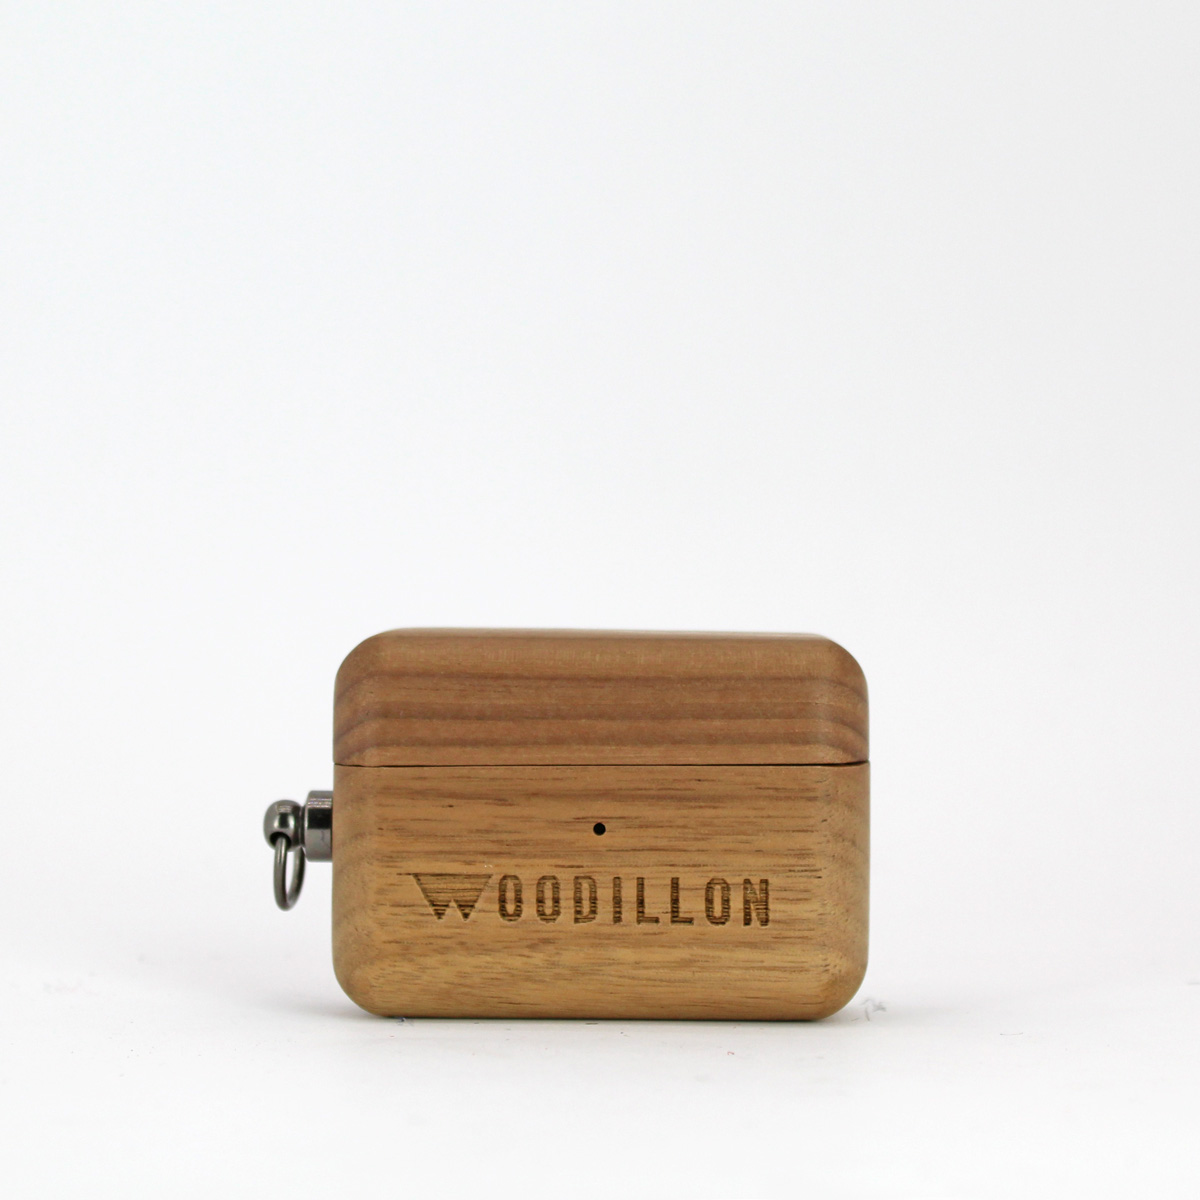 Airpods case noce per airpods pro, Woodillon